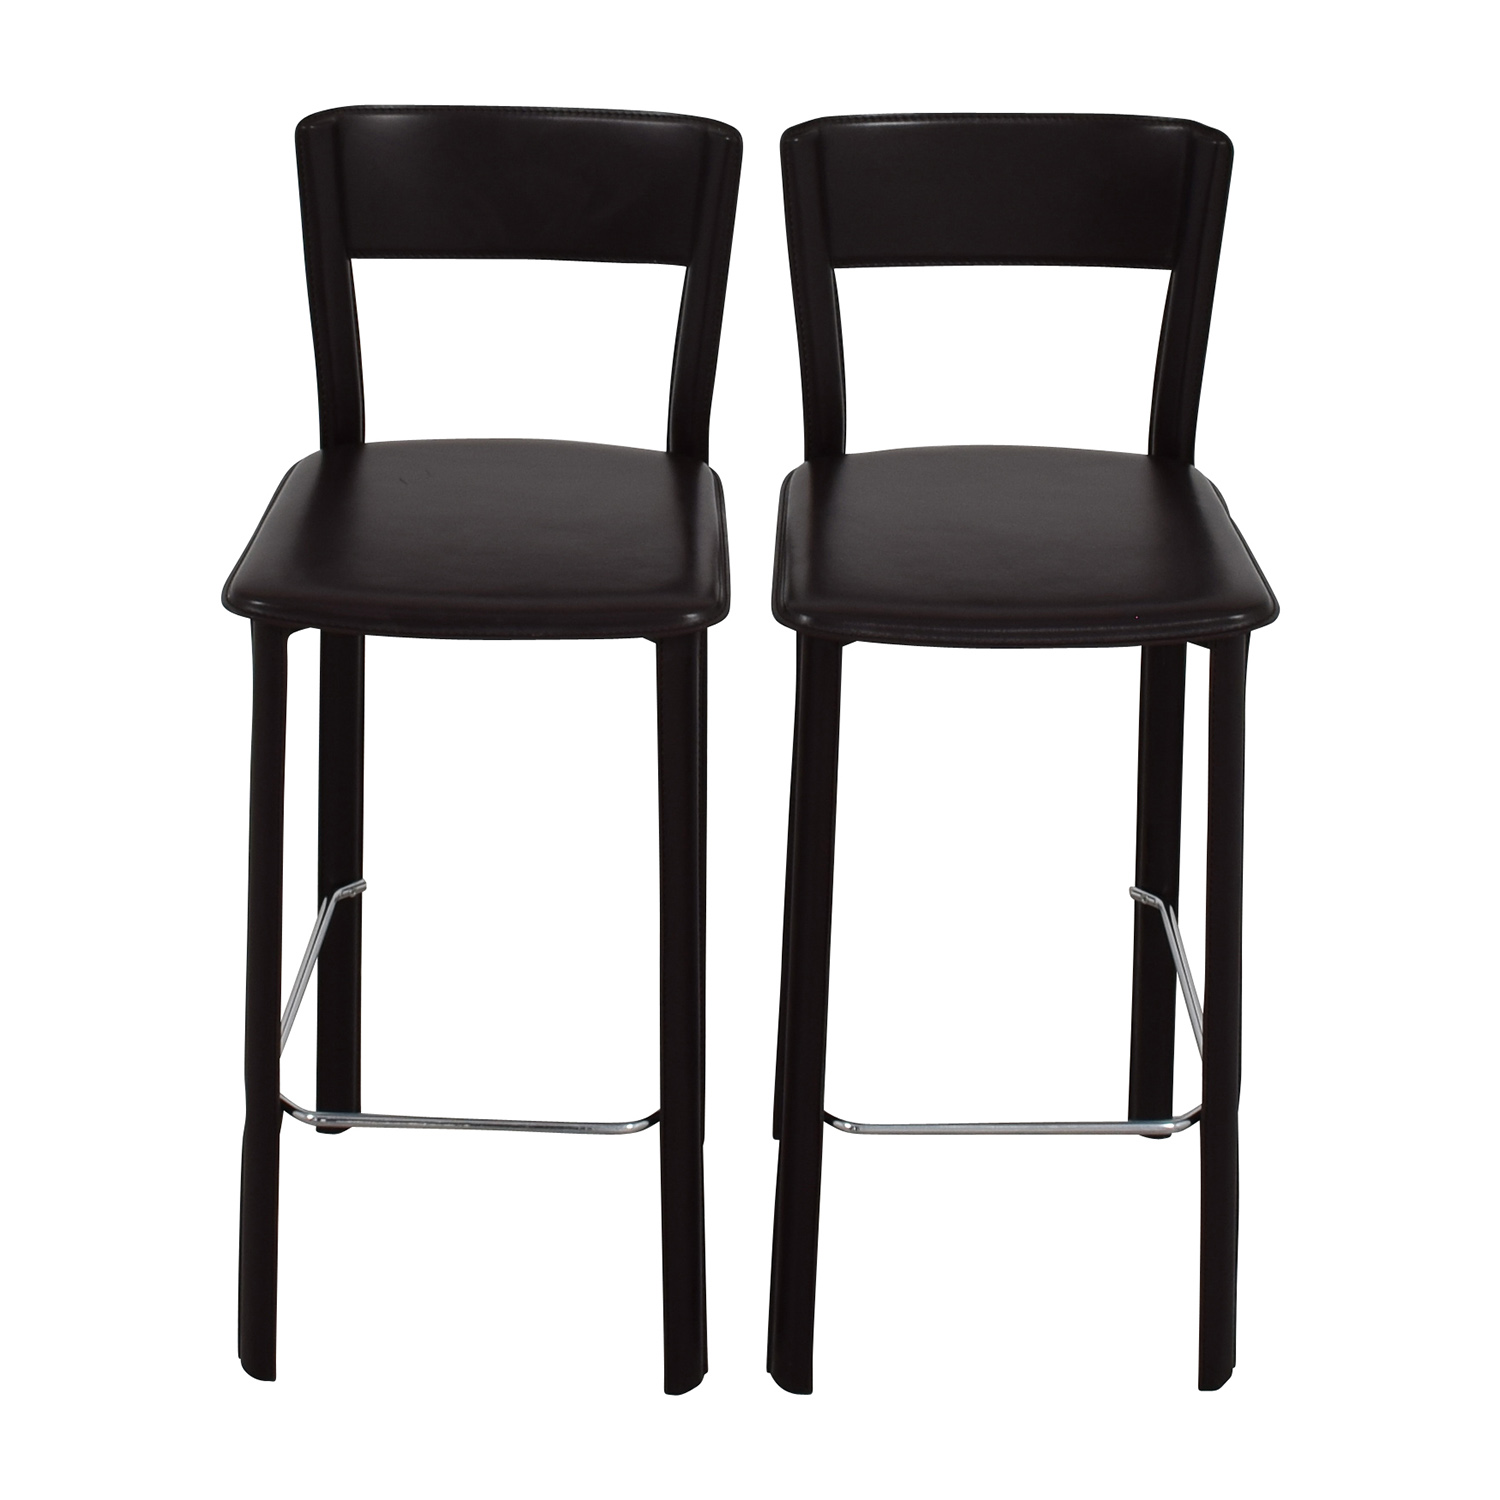 70 off design within reach design within reach allegro counter stools chairs